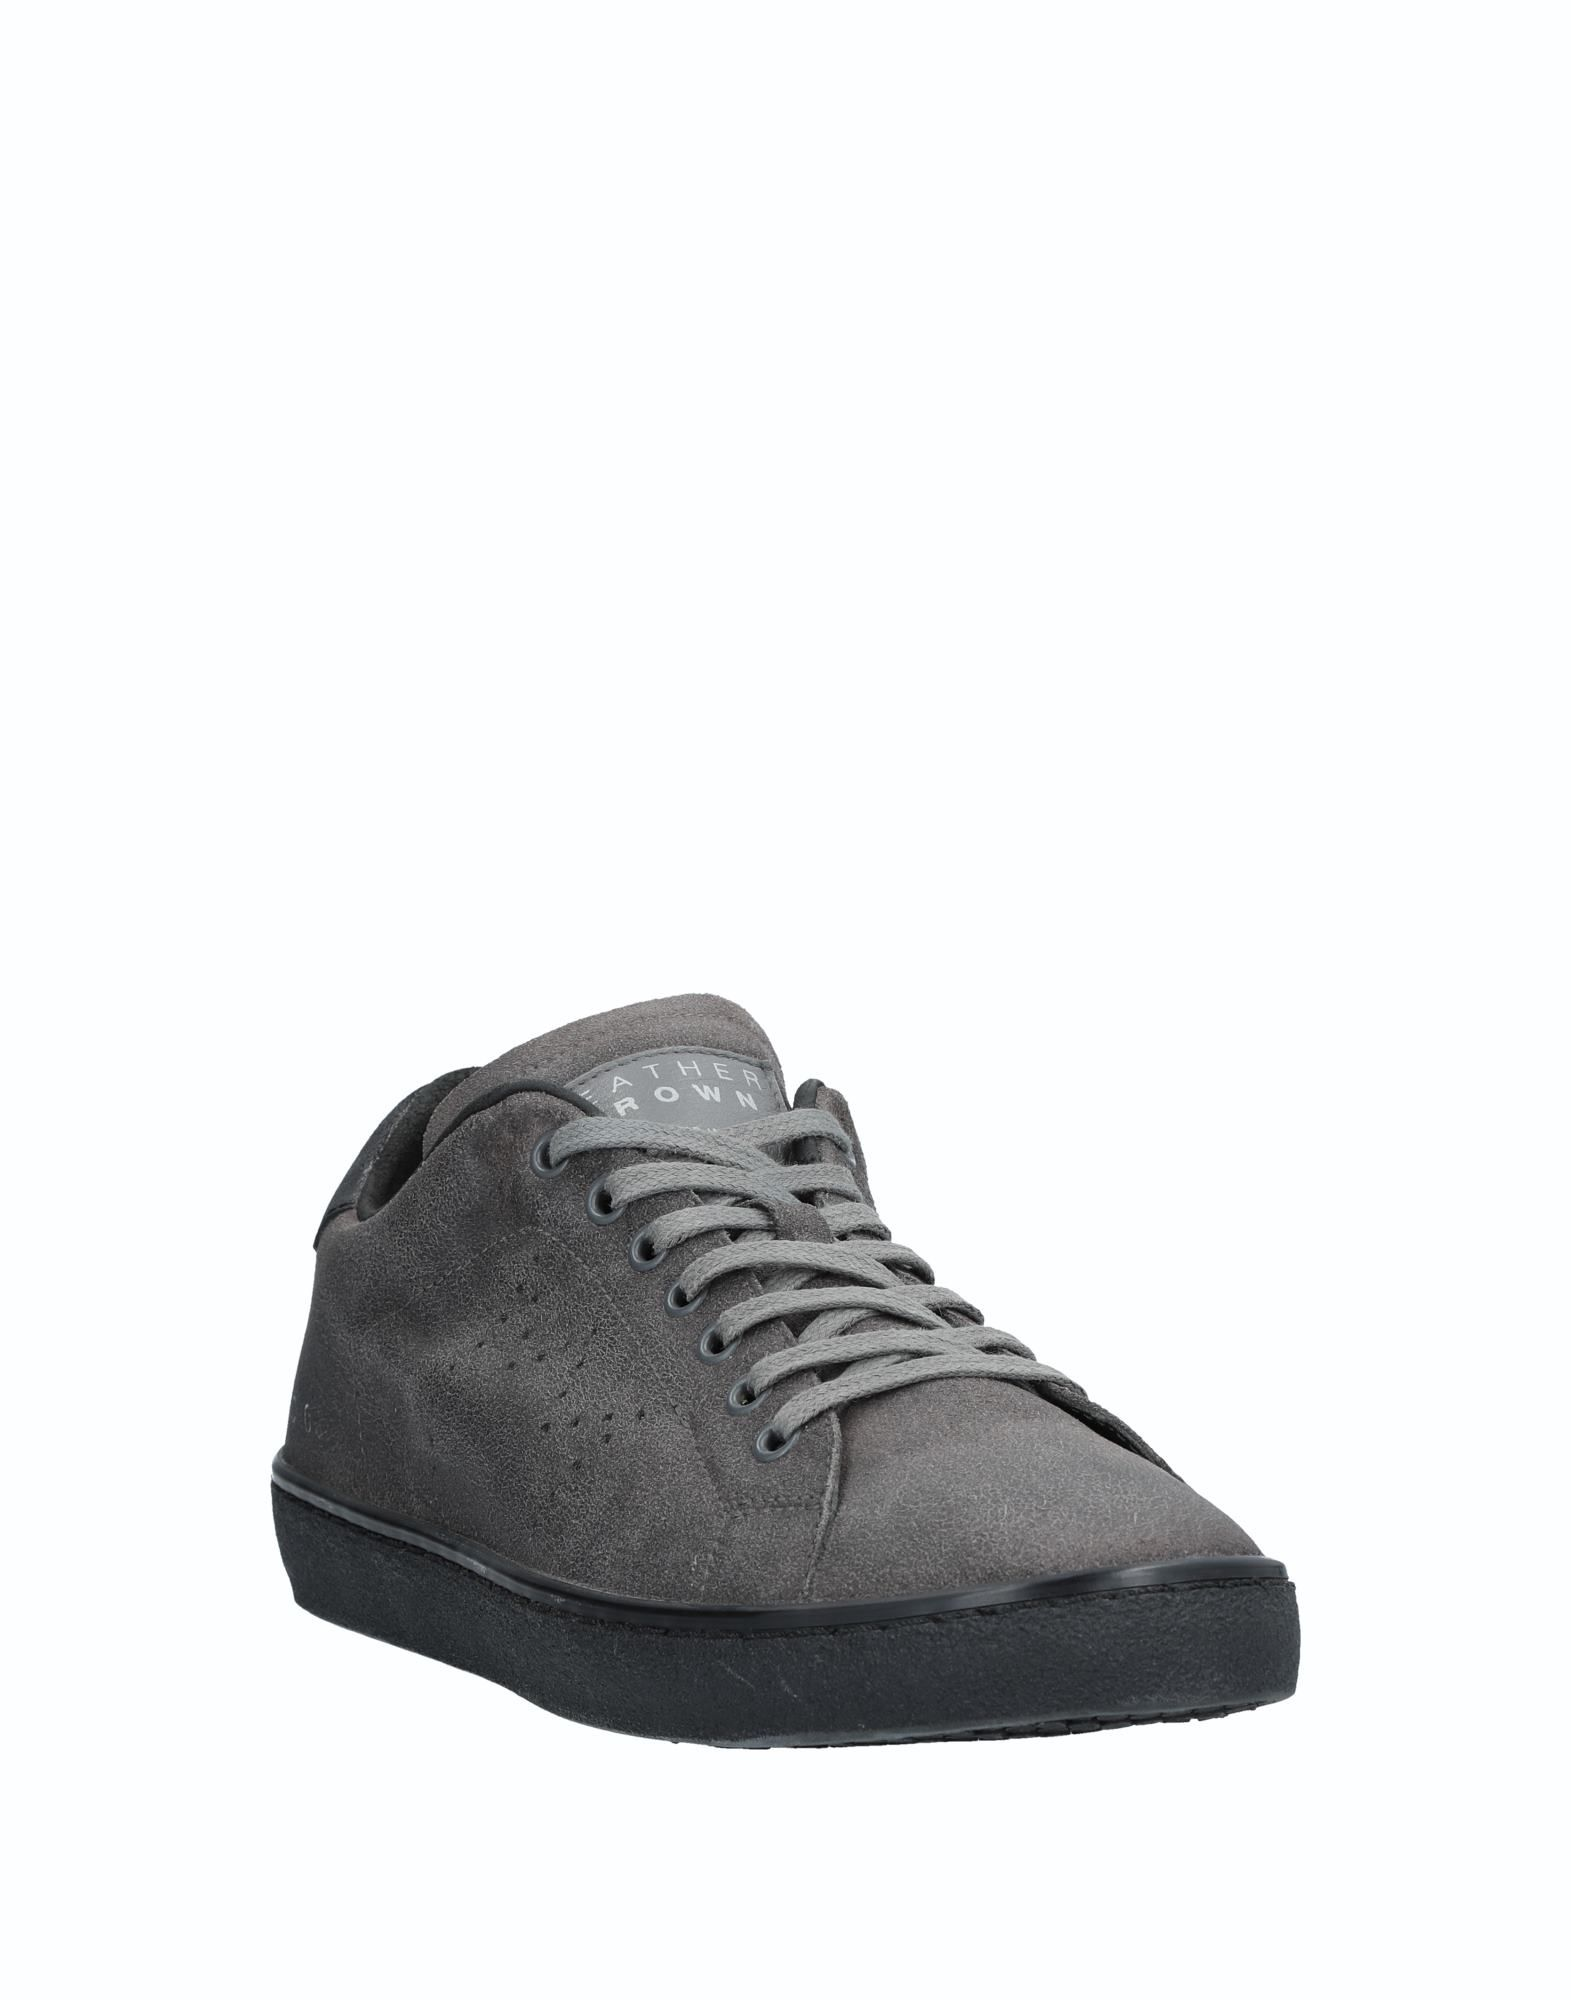 Leather Crown Sneakers Herren  11536933TP Neue Neue 11536933TP Schuhe c06ace